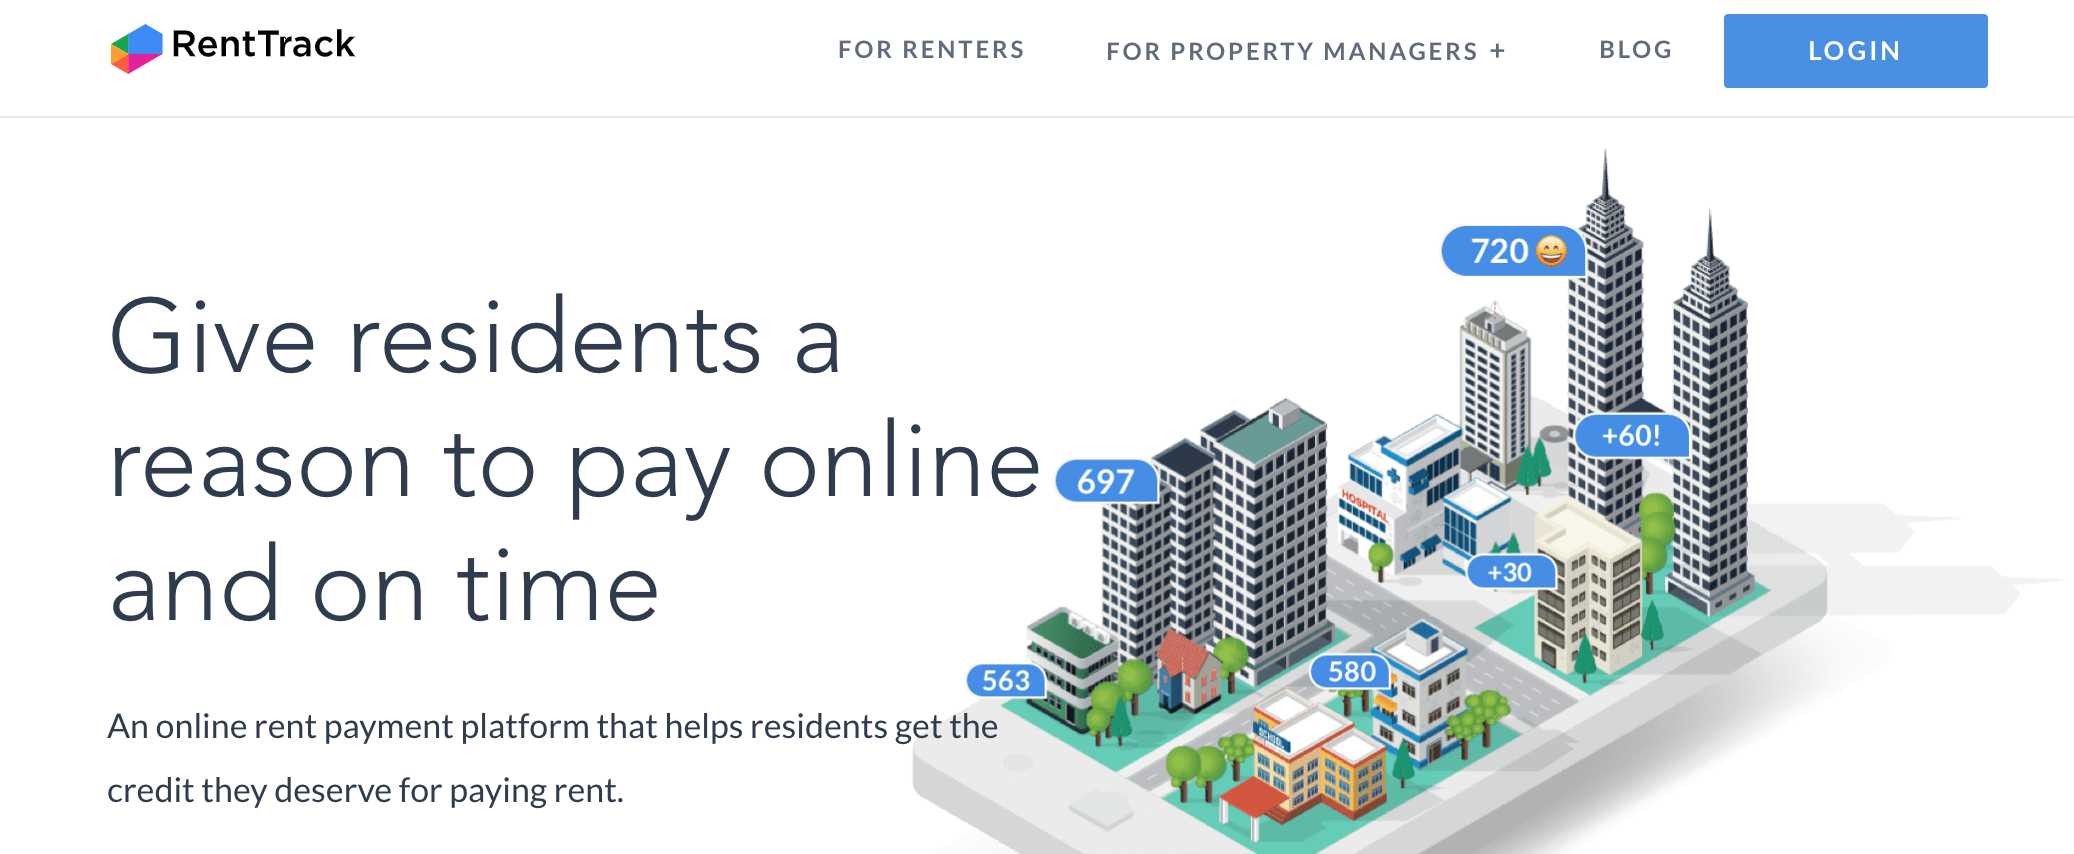 RentTrack rent reporting